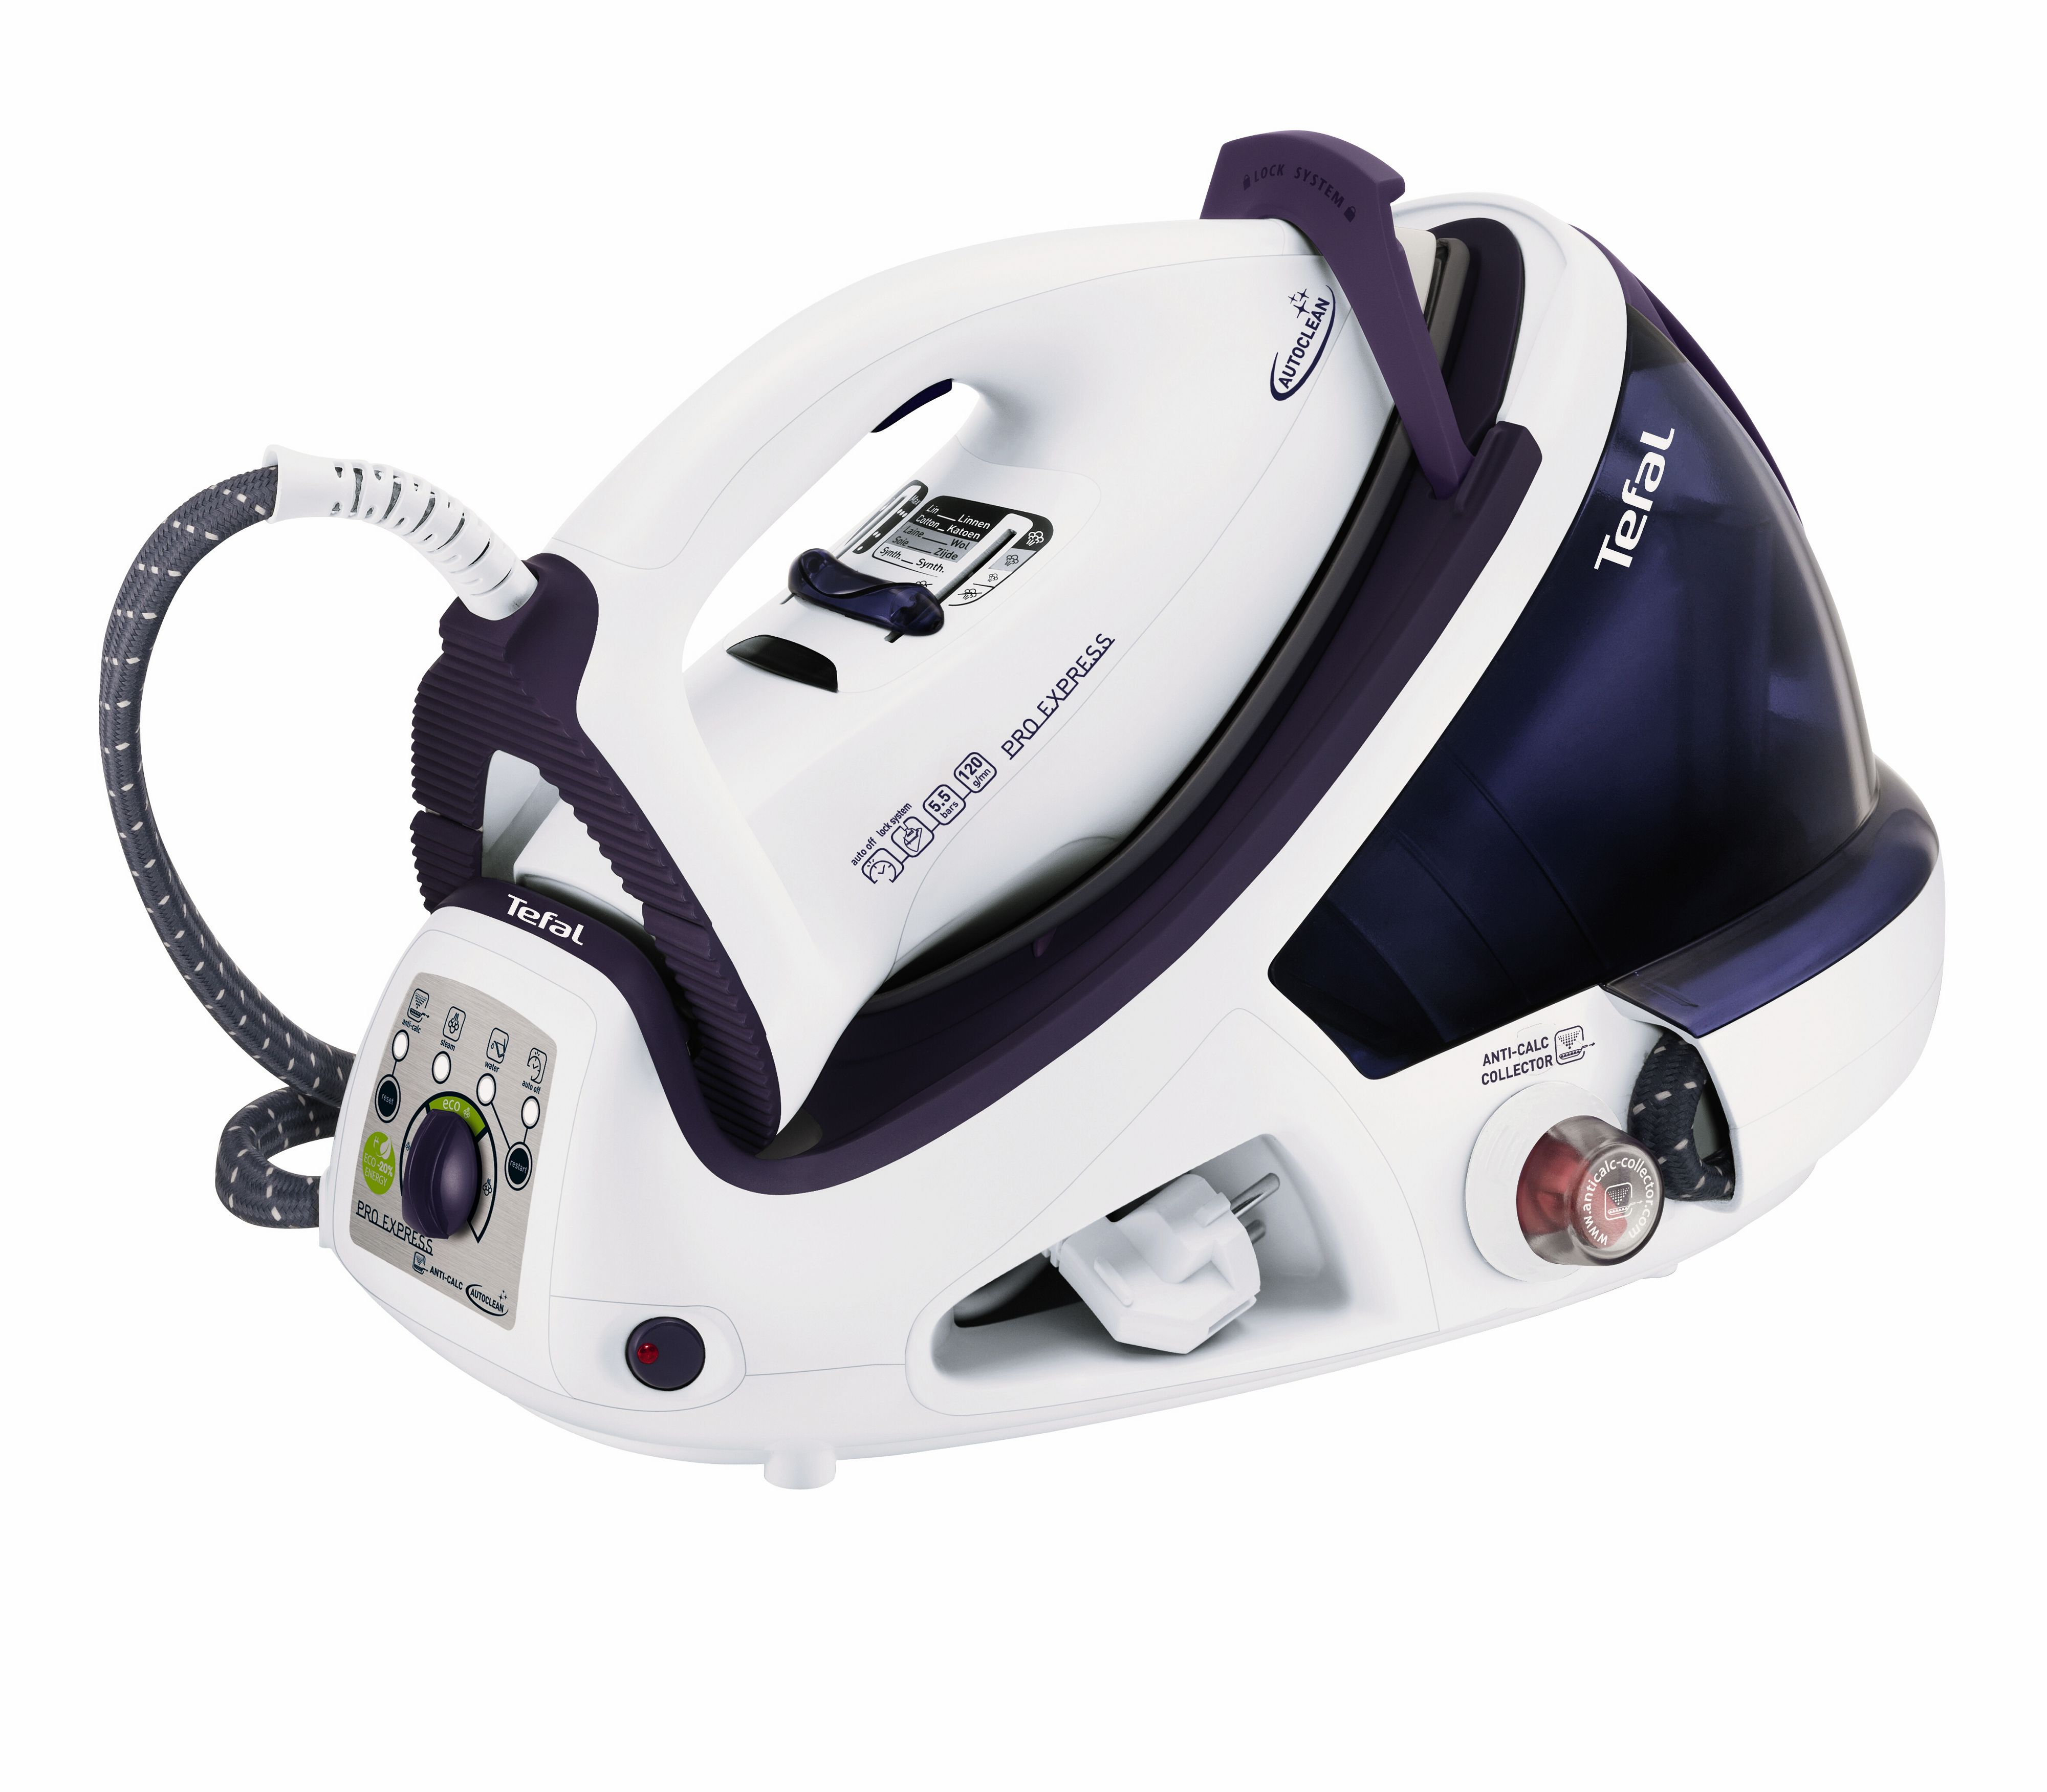 Pro express steam generator GV8430